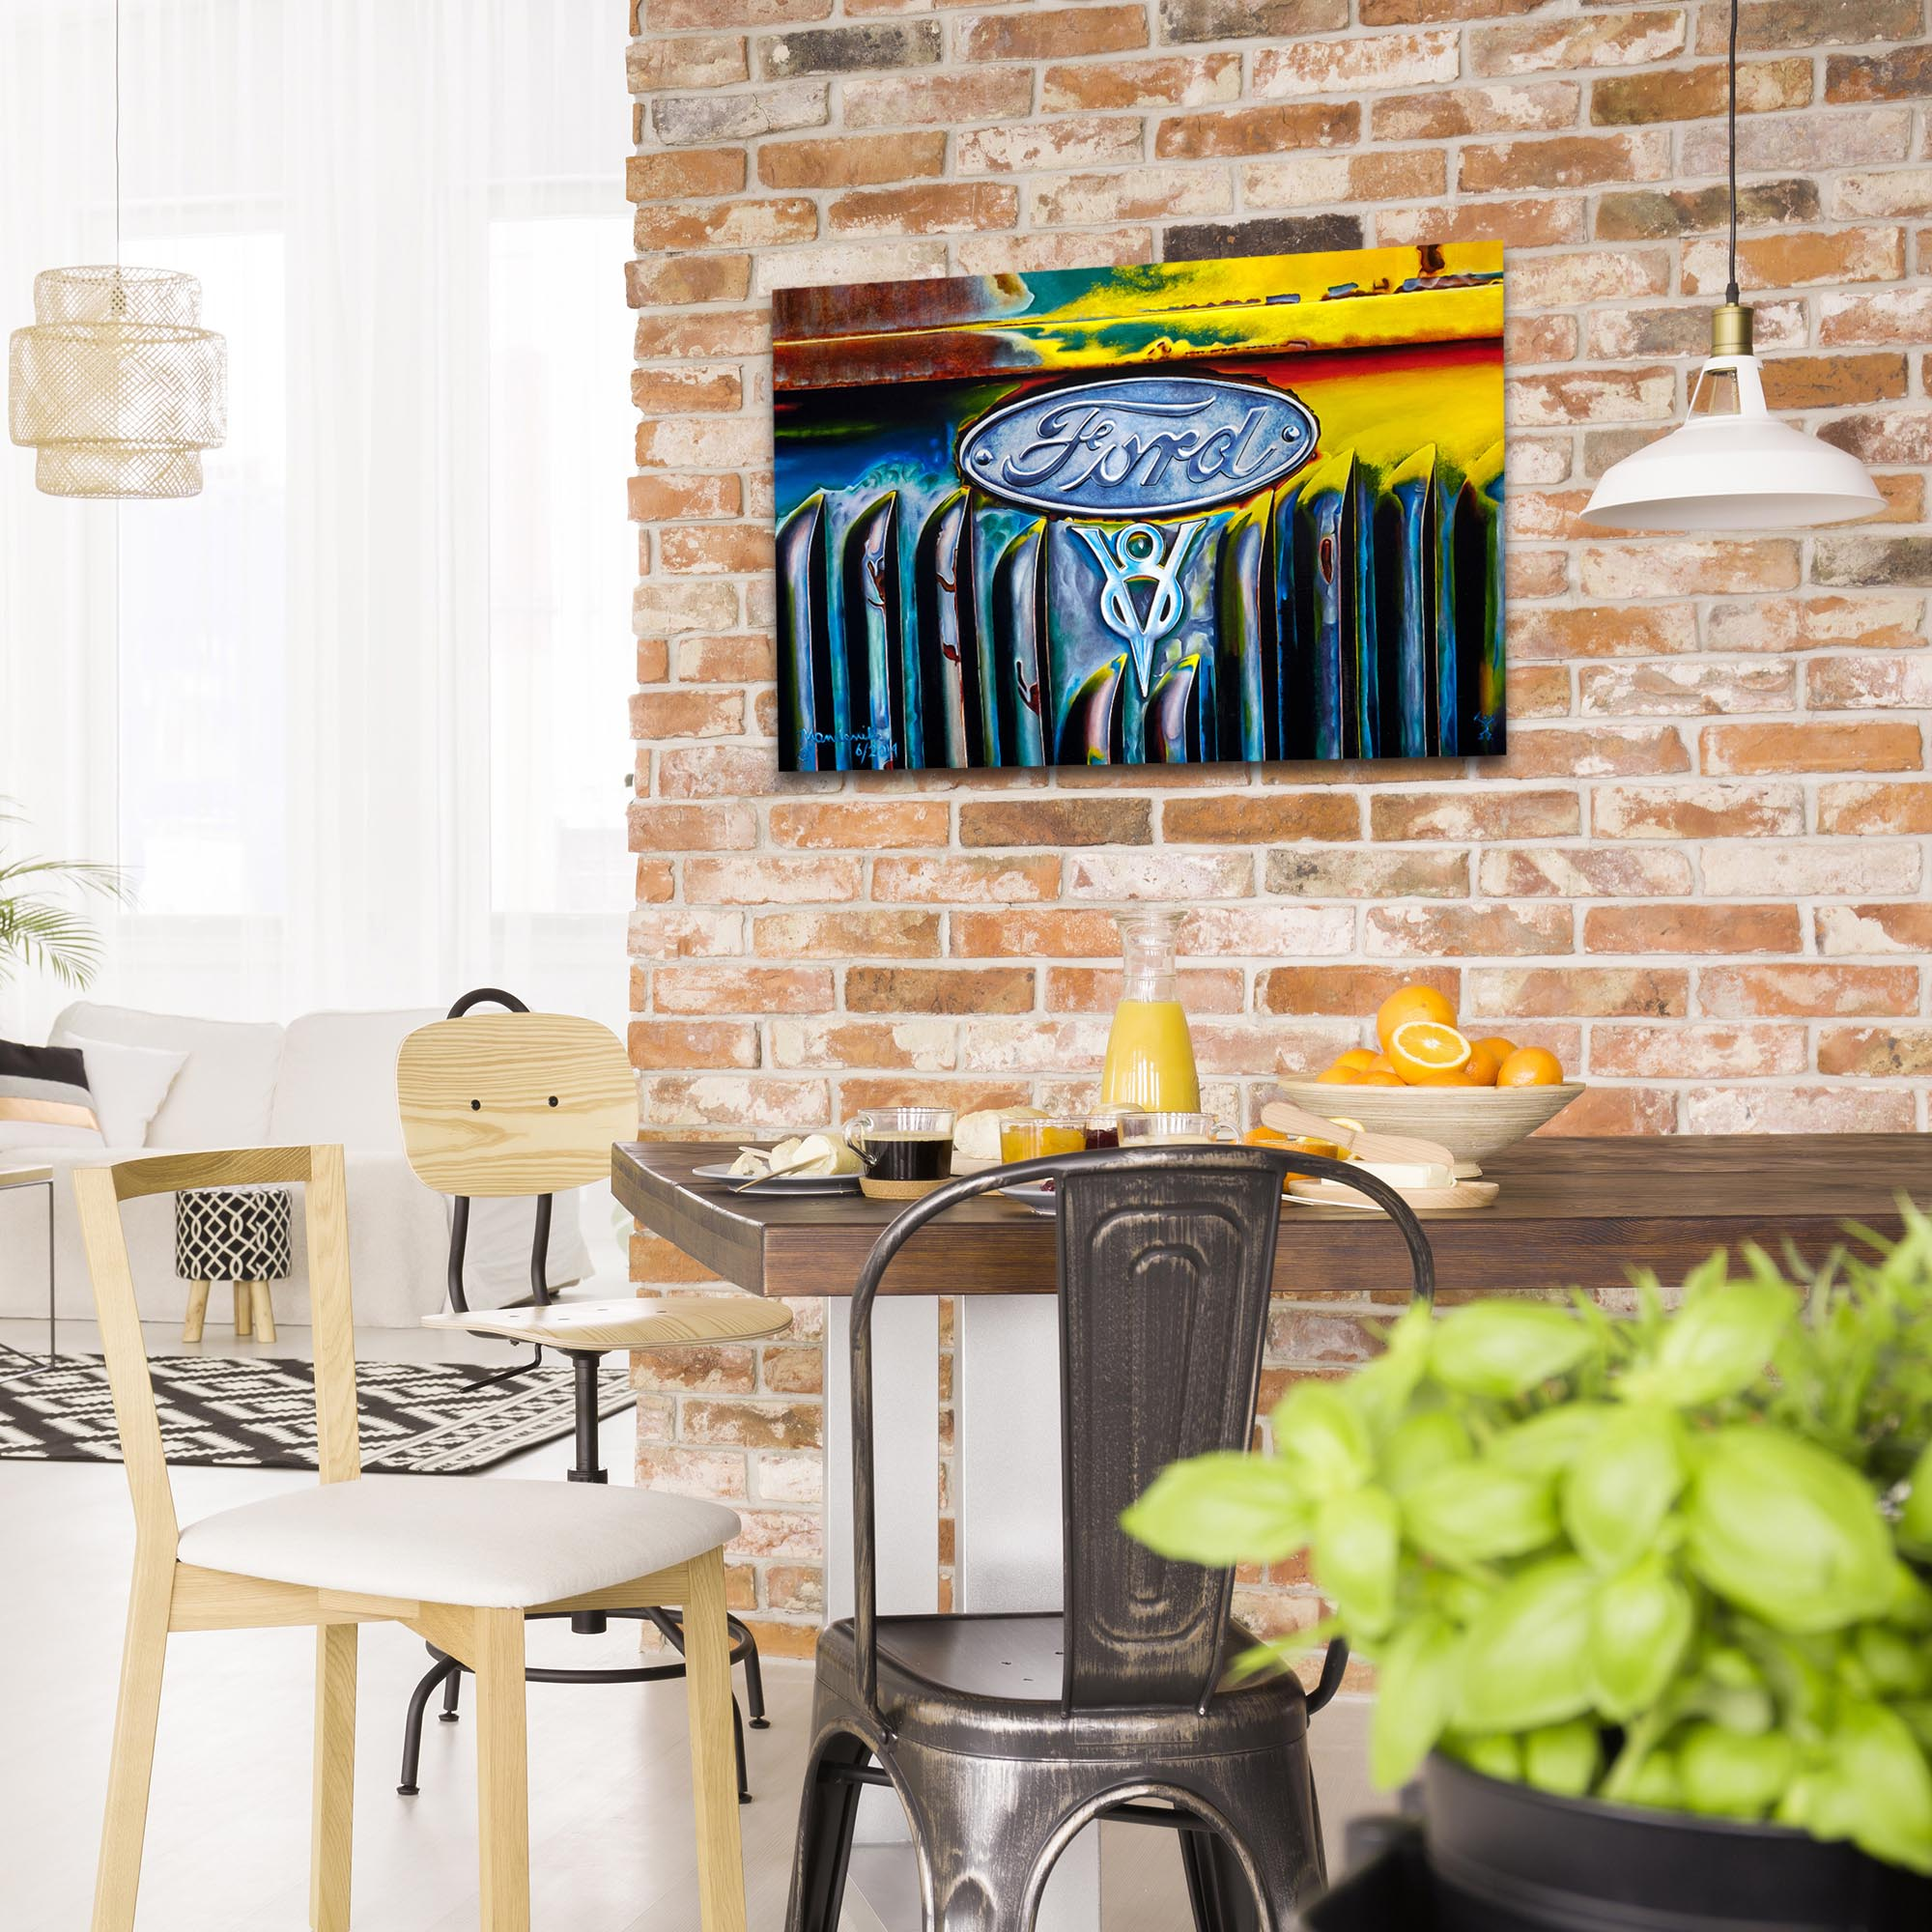 Americana Wall Art 'Forever Ford' - Classic Cars Decor on Metal or Plexiglass - Lifestyle View